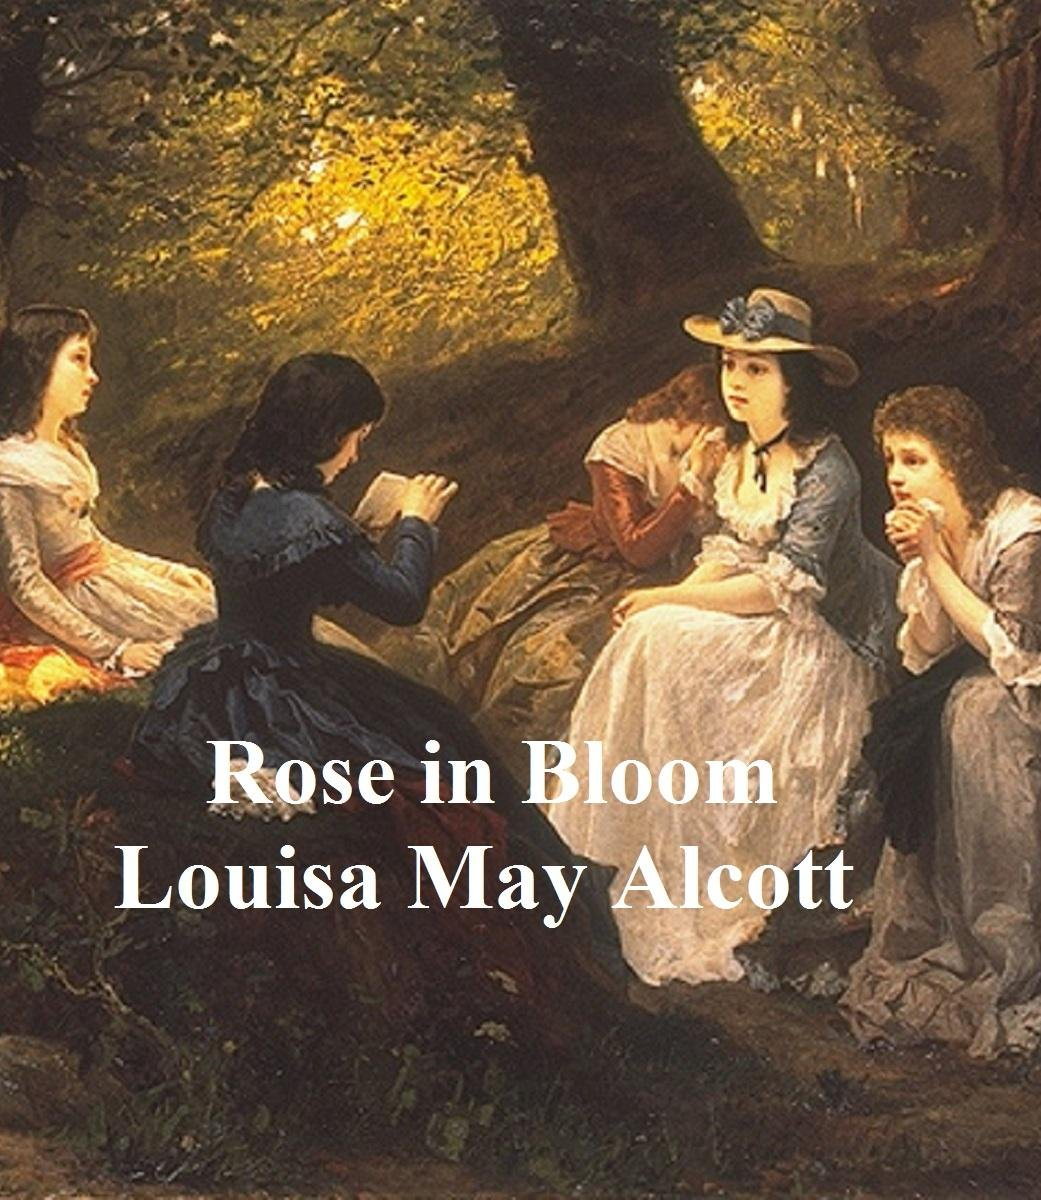 Rose in Bloom, A Sequel to Eight Cousins